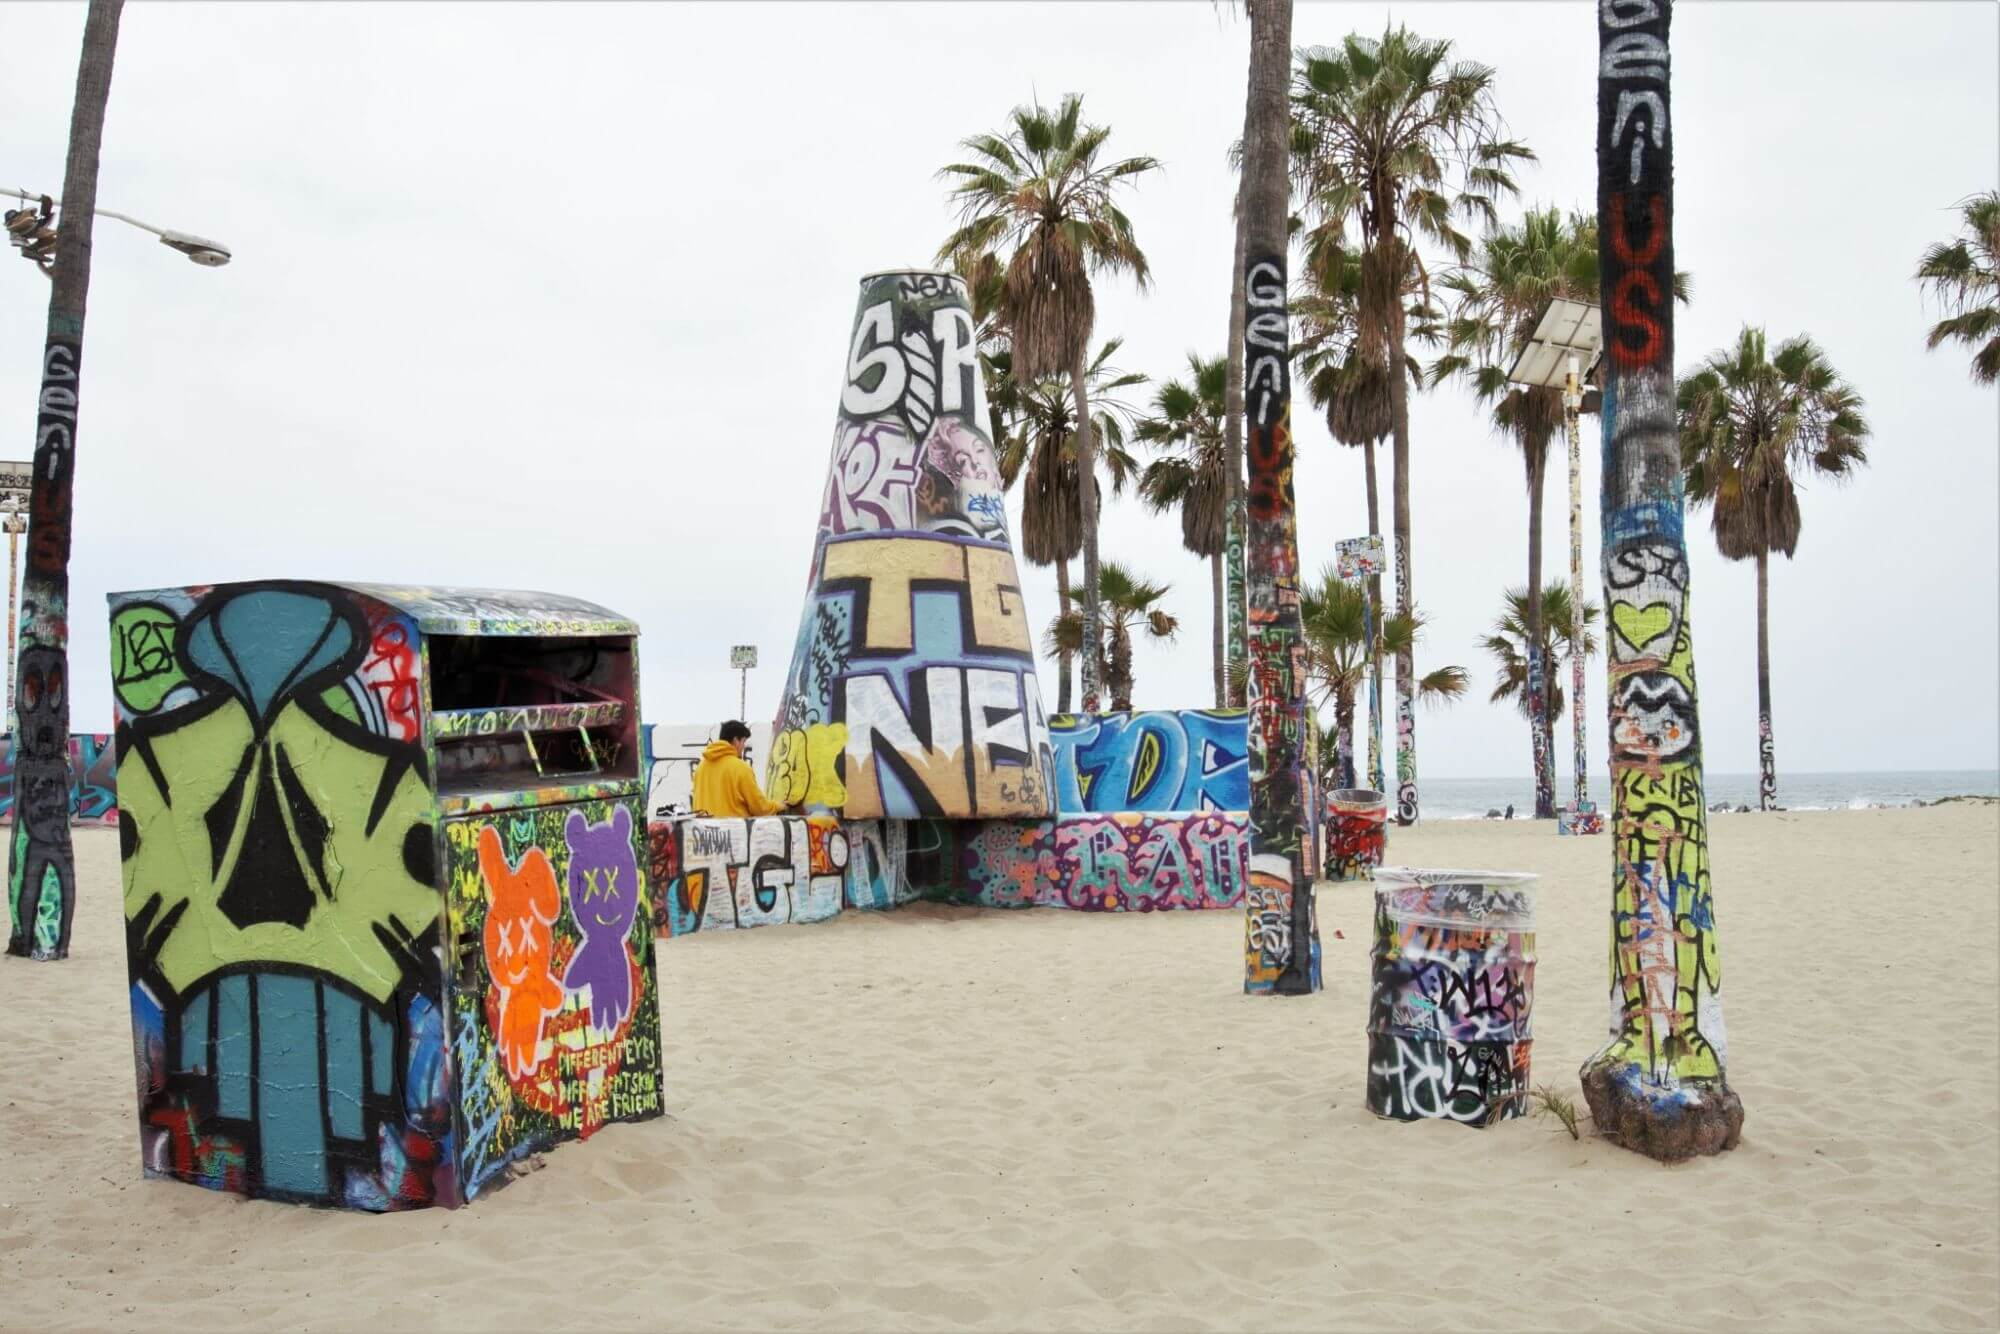 Graffiti art in Venice Beach